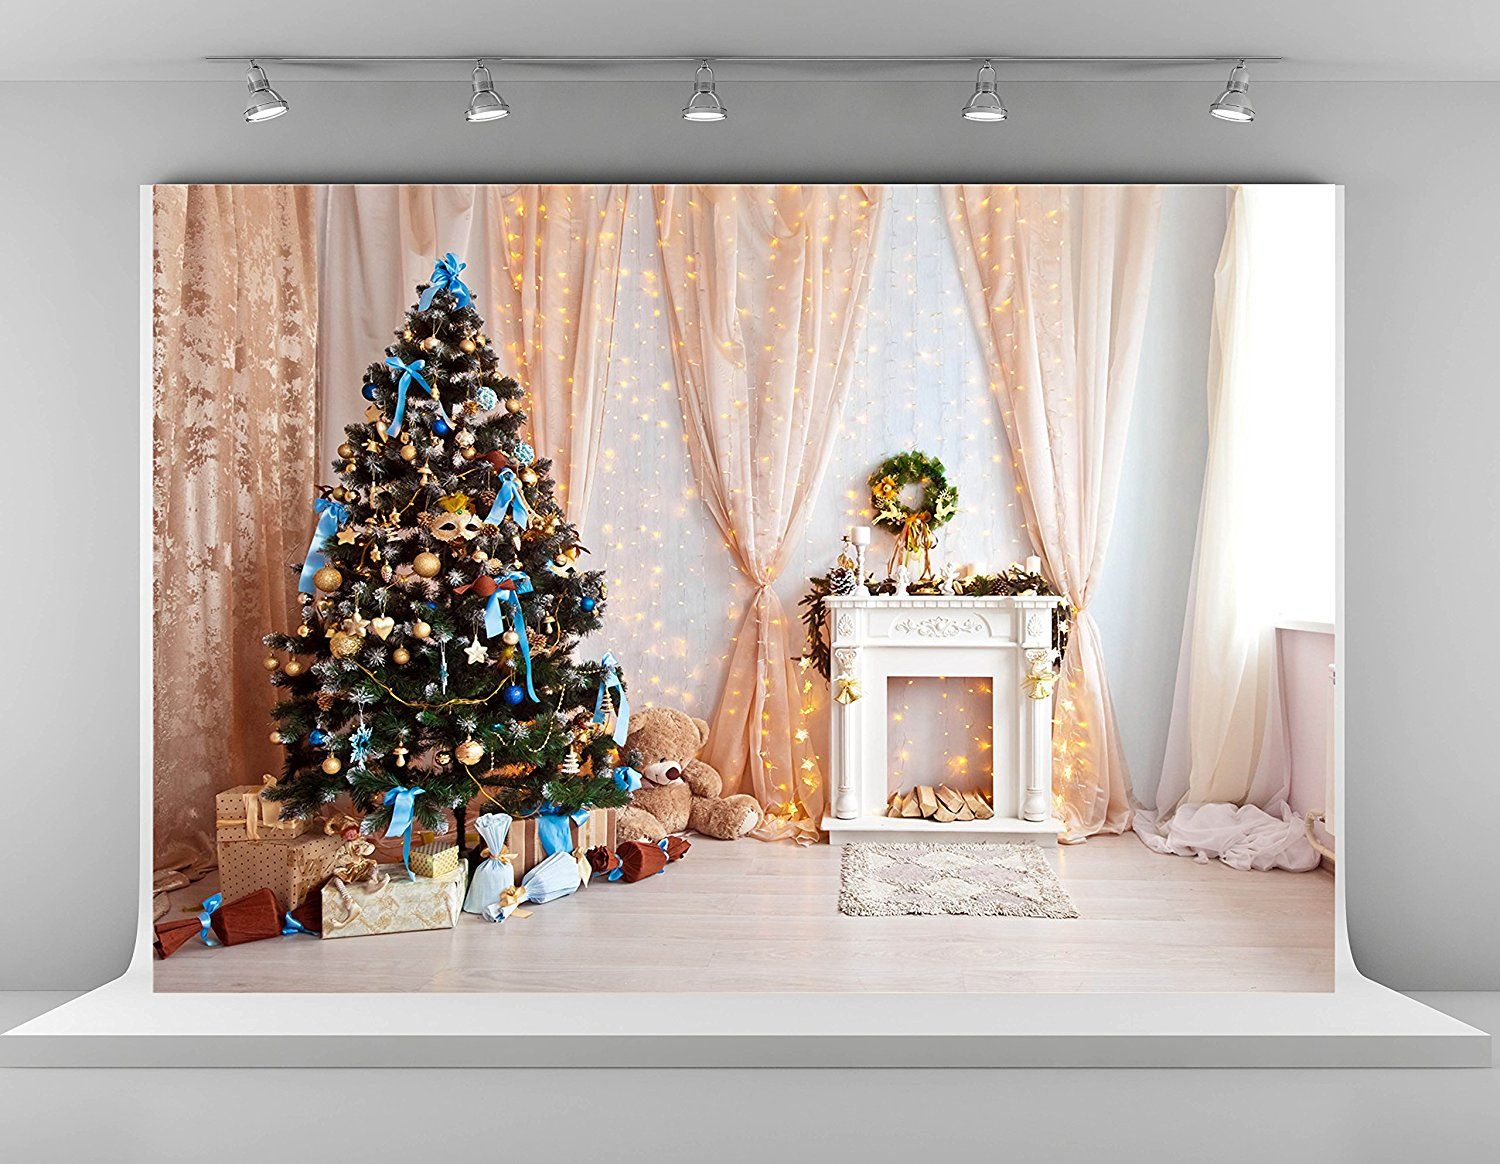 New Christmas Backdrop 7x5ft Christmas Party Decoration Banner Photo Booth Backdrops Sofa and Christmas Decoration Photography Background